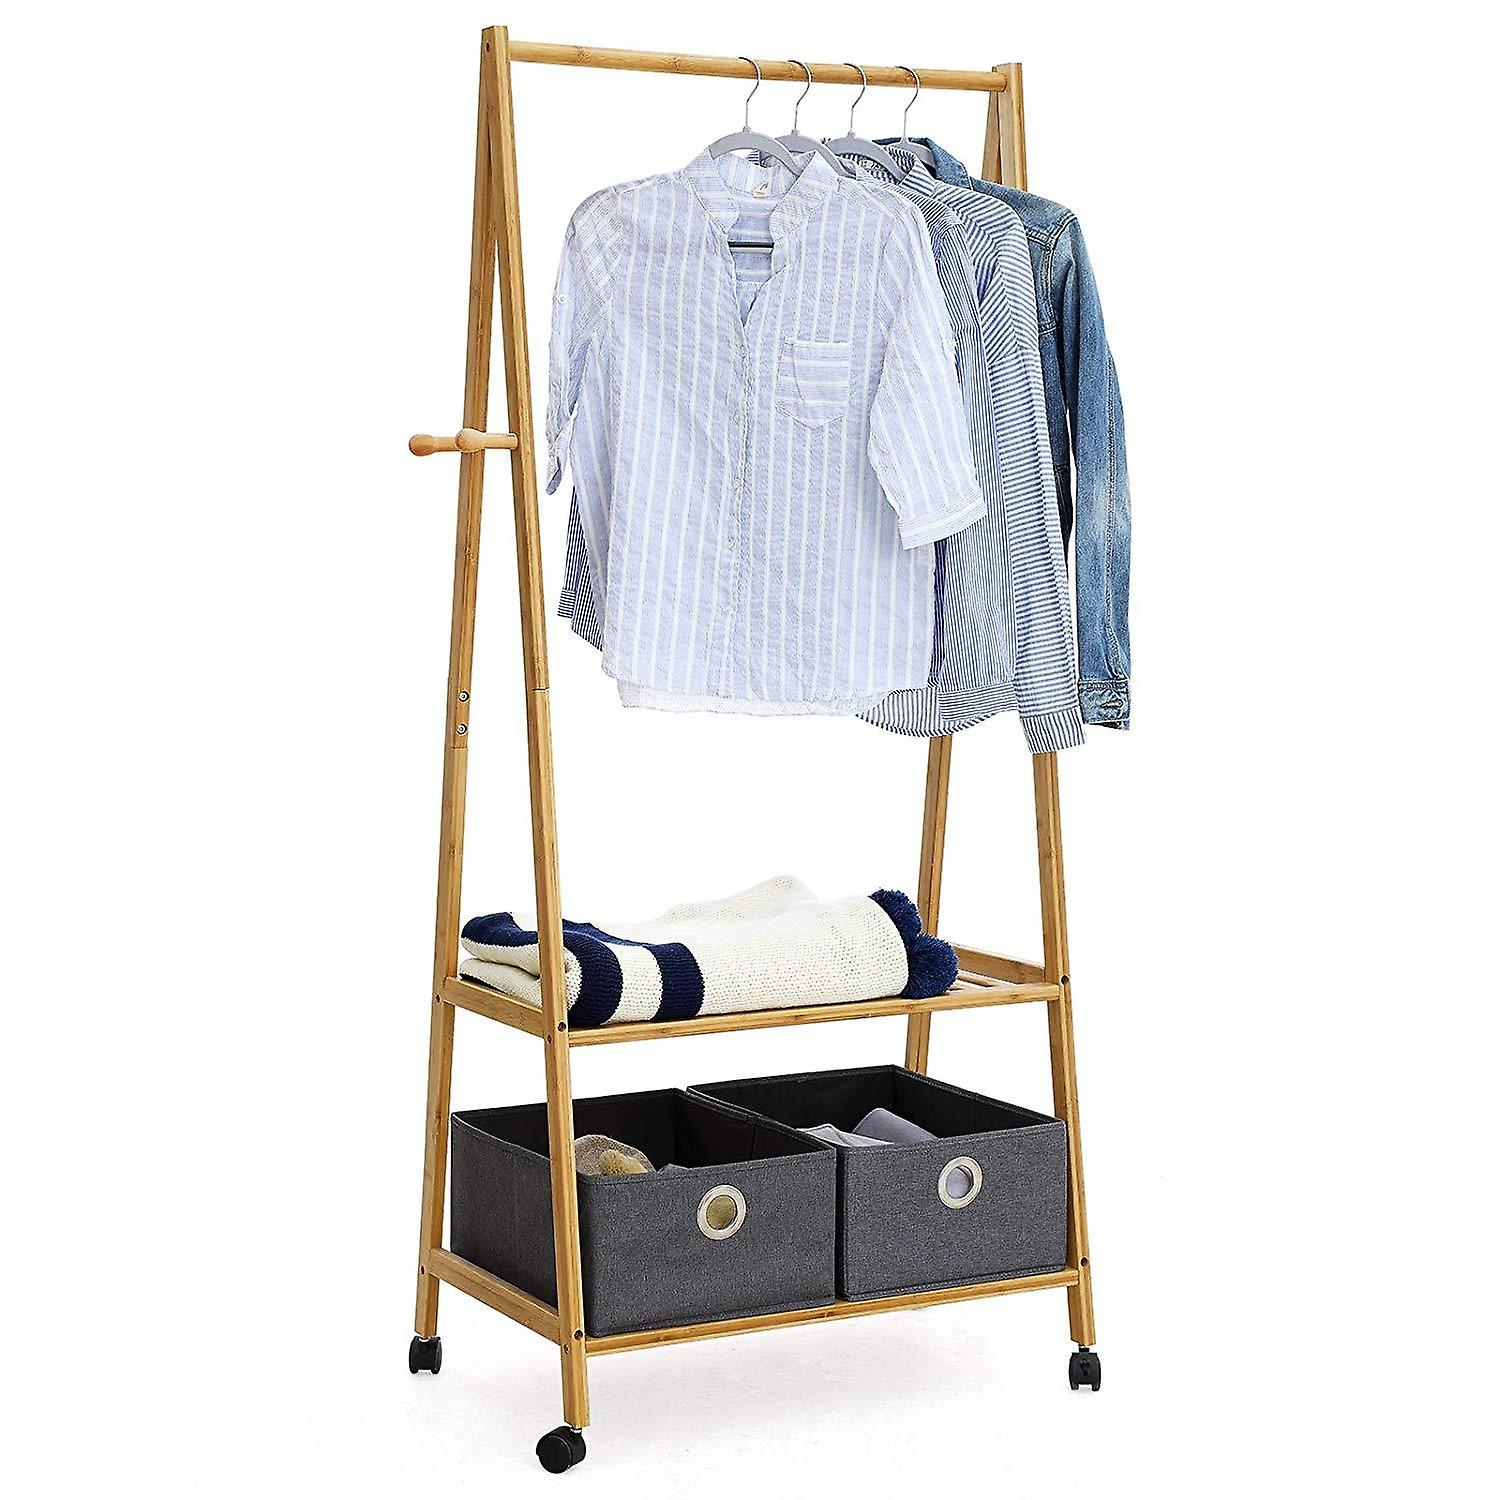 Bamboo Clothes rack with wheels